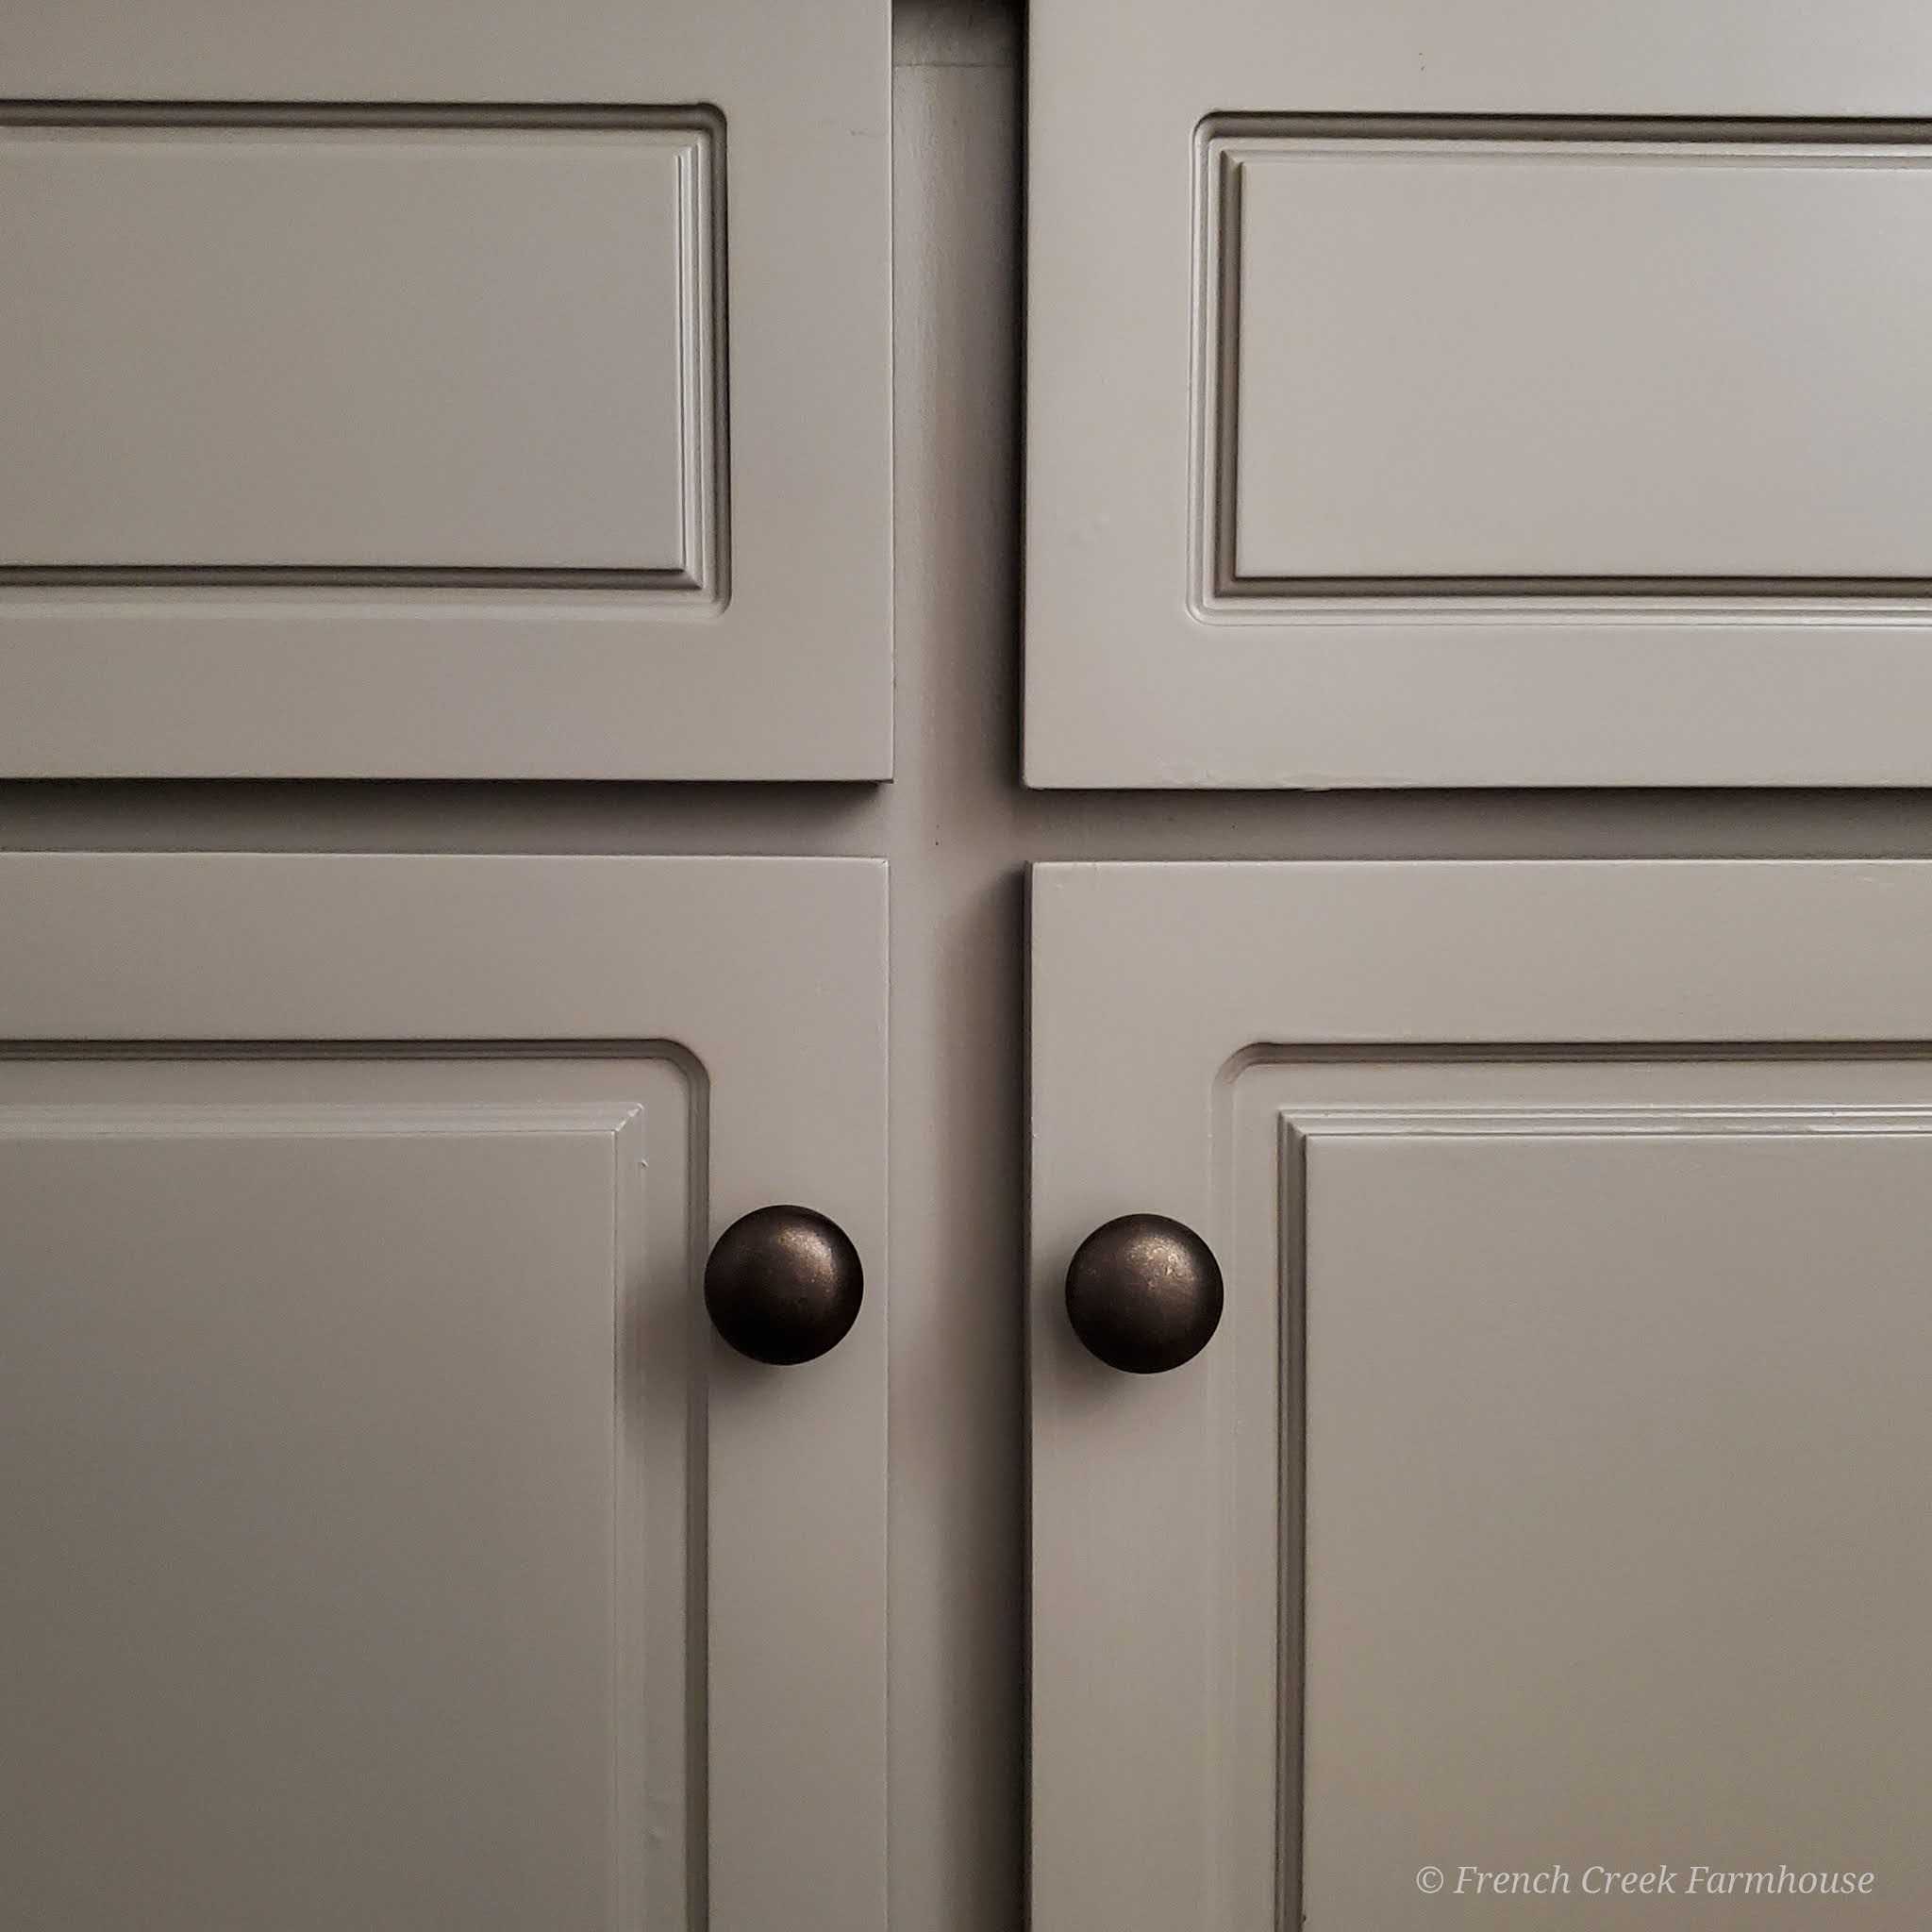 French Linen paint color on cabinets